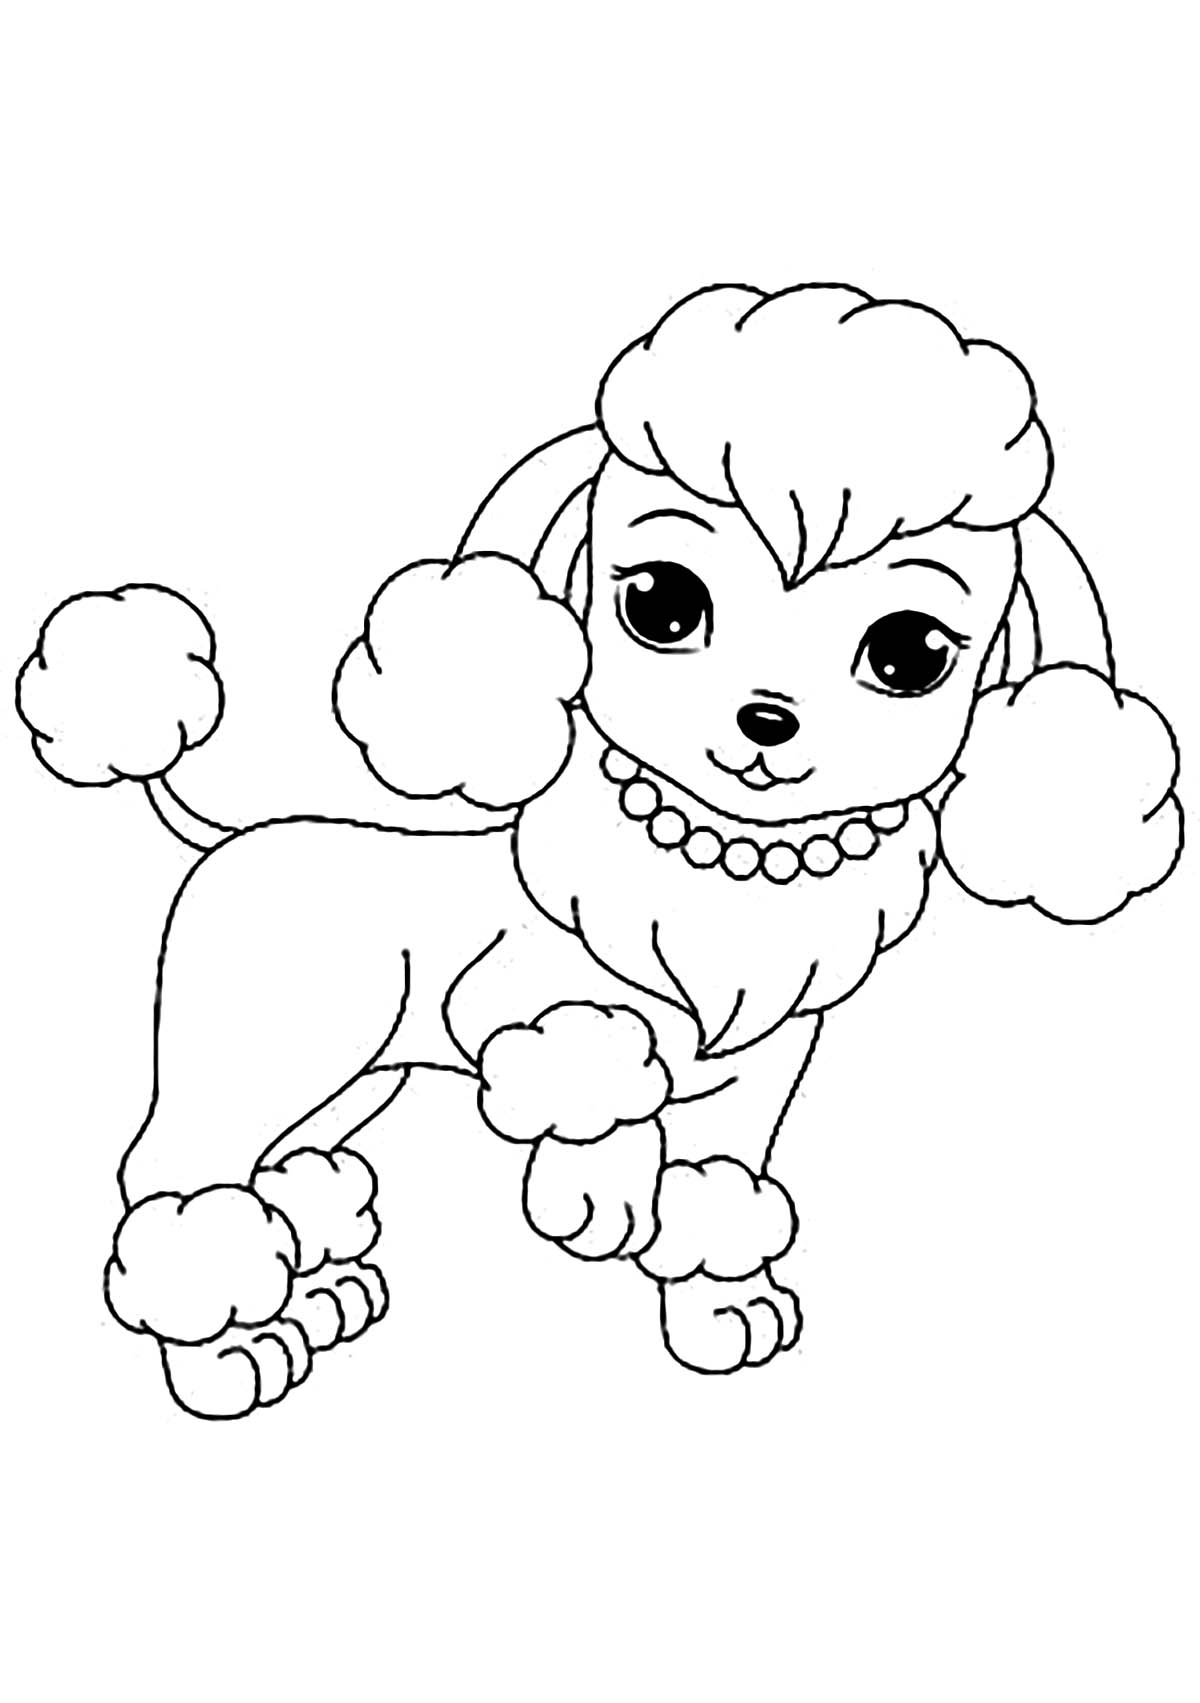 kids dog coloring pages dog coloring pages for kids print them online for free kids coloring dog pages